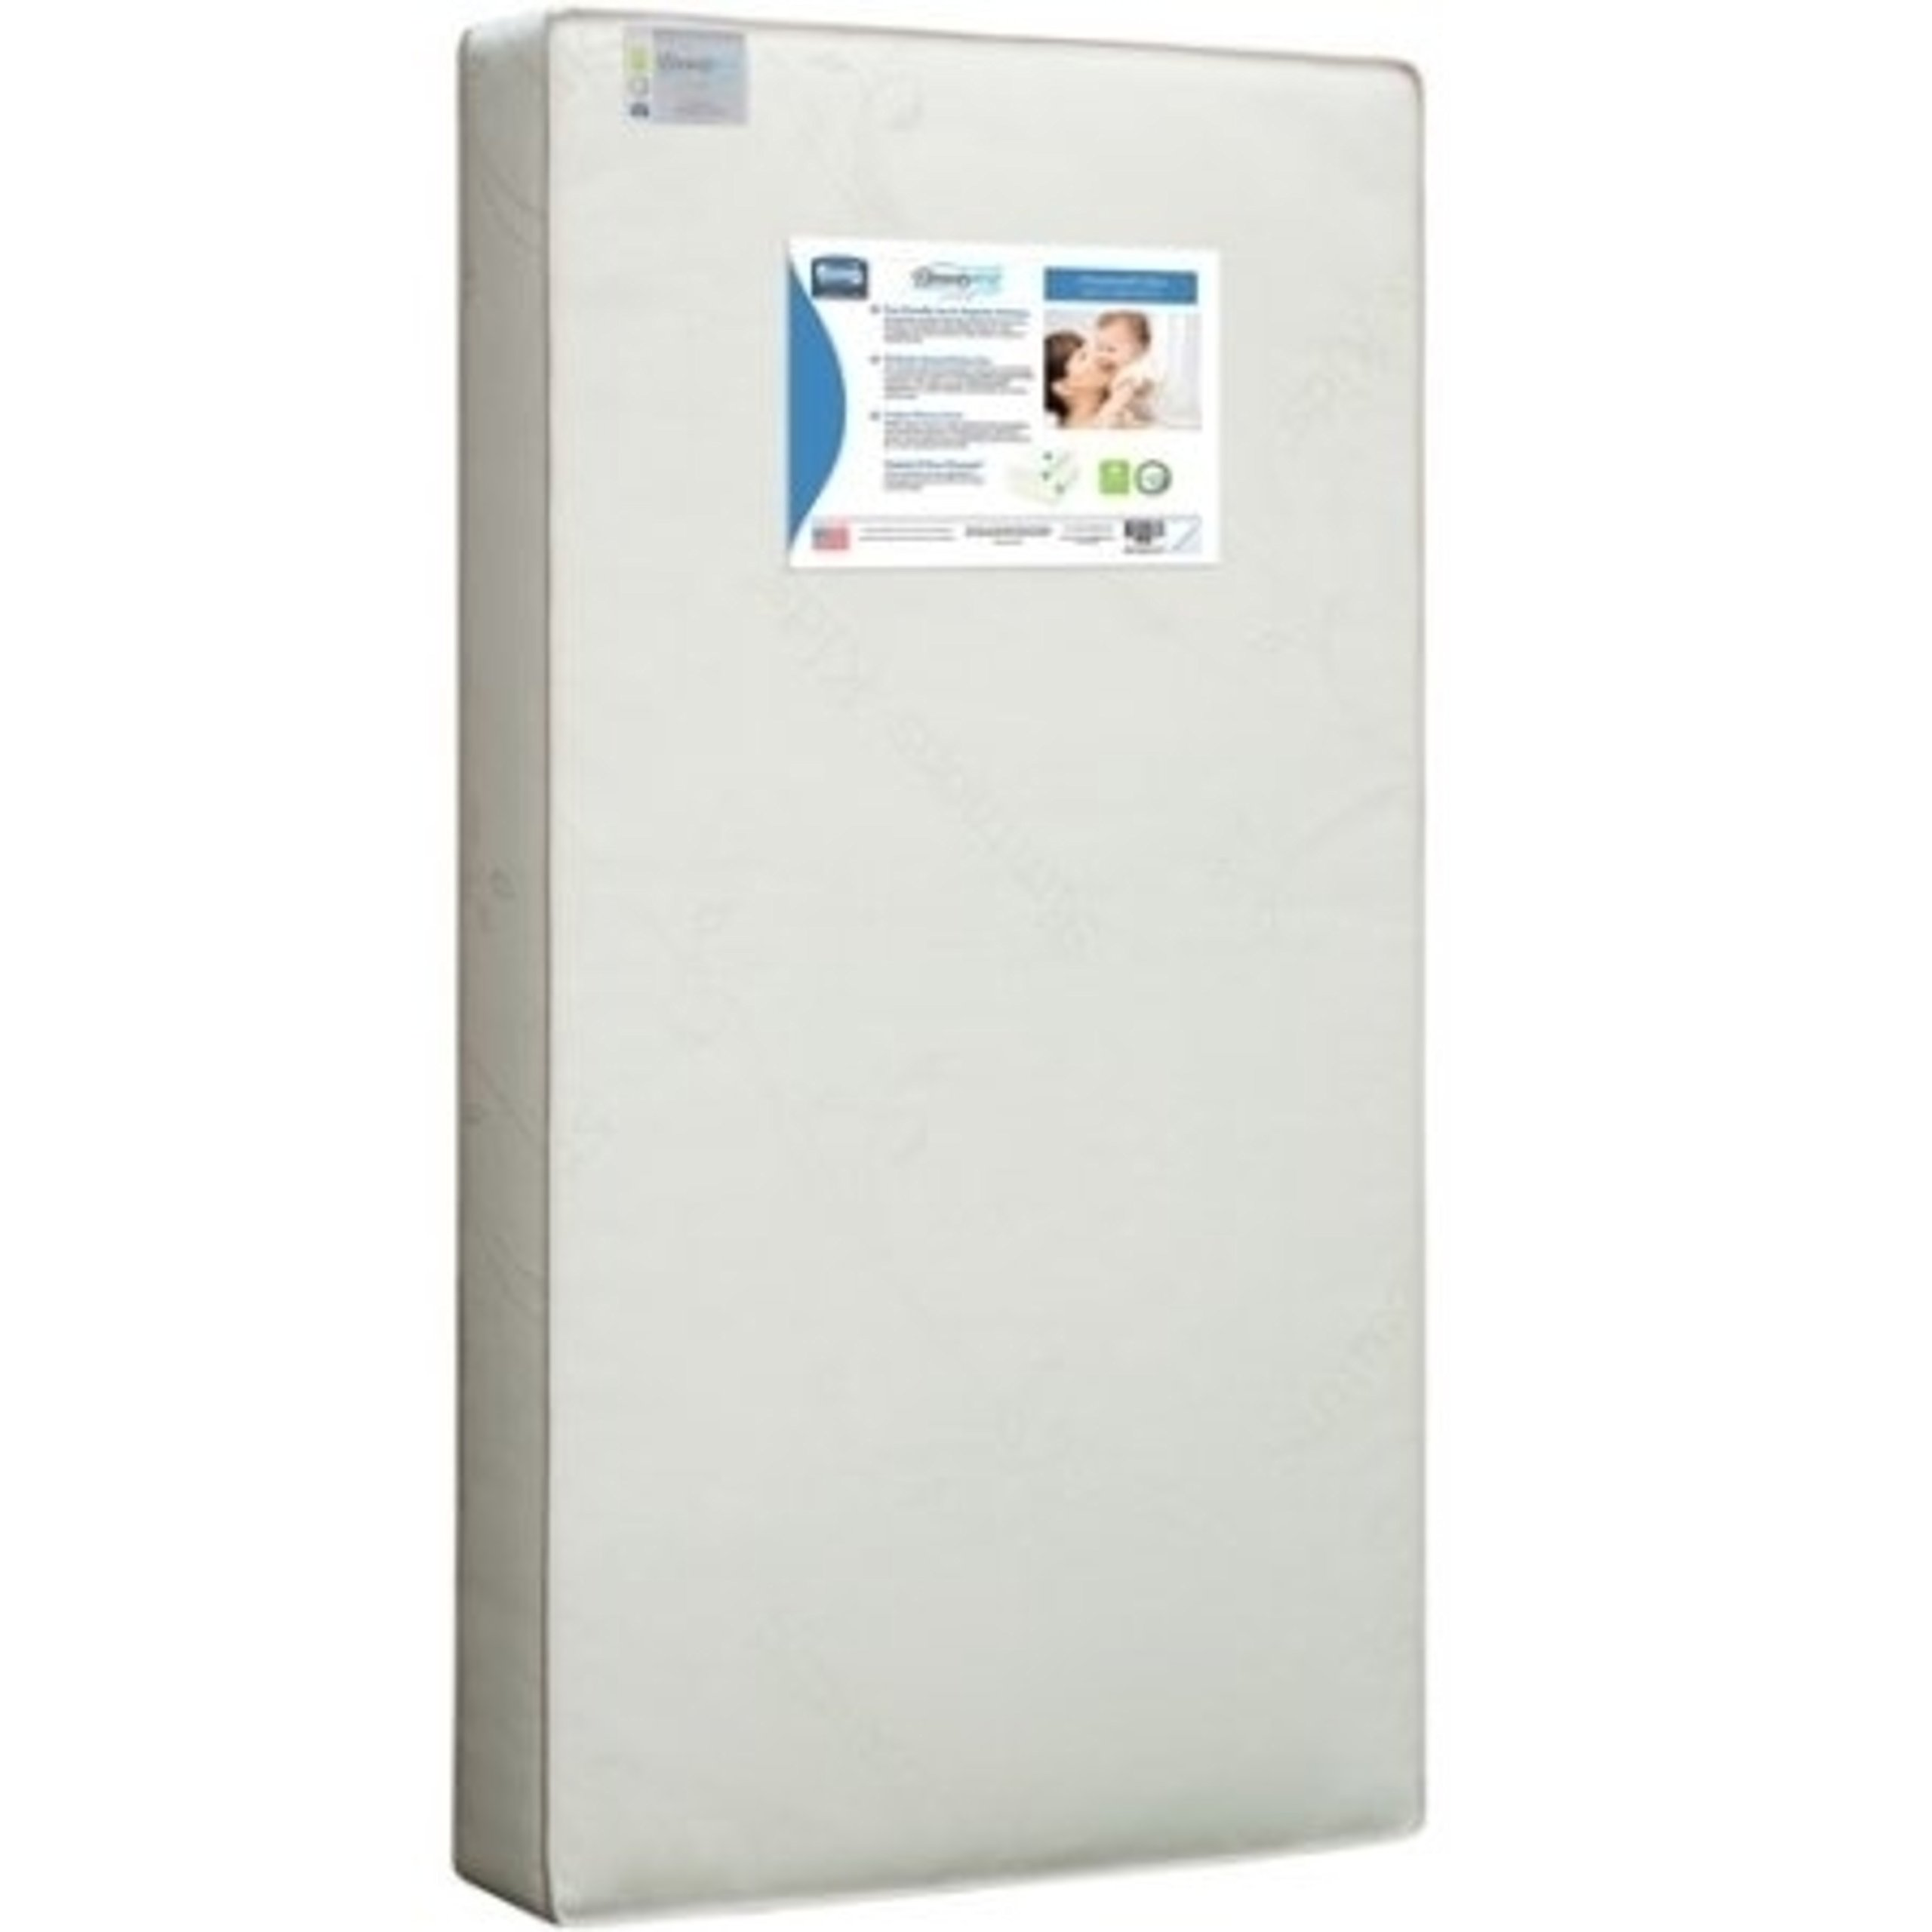 Cotton Woven Sustainable Soy Foam Superior Firmness Baby and Toddler Mattress